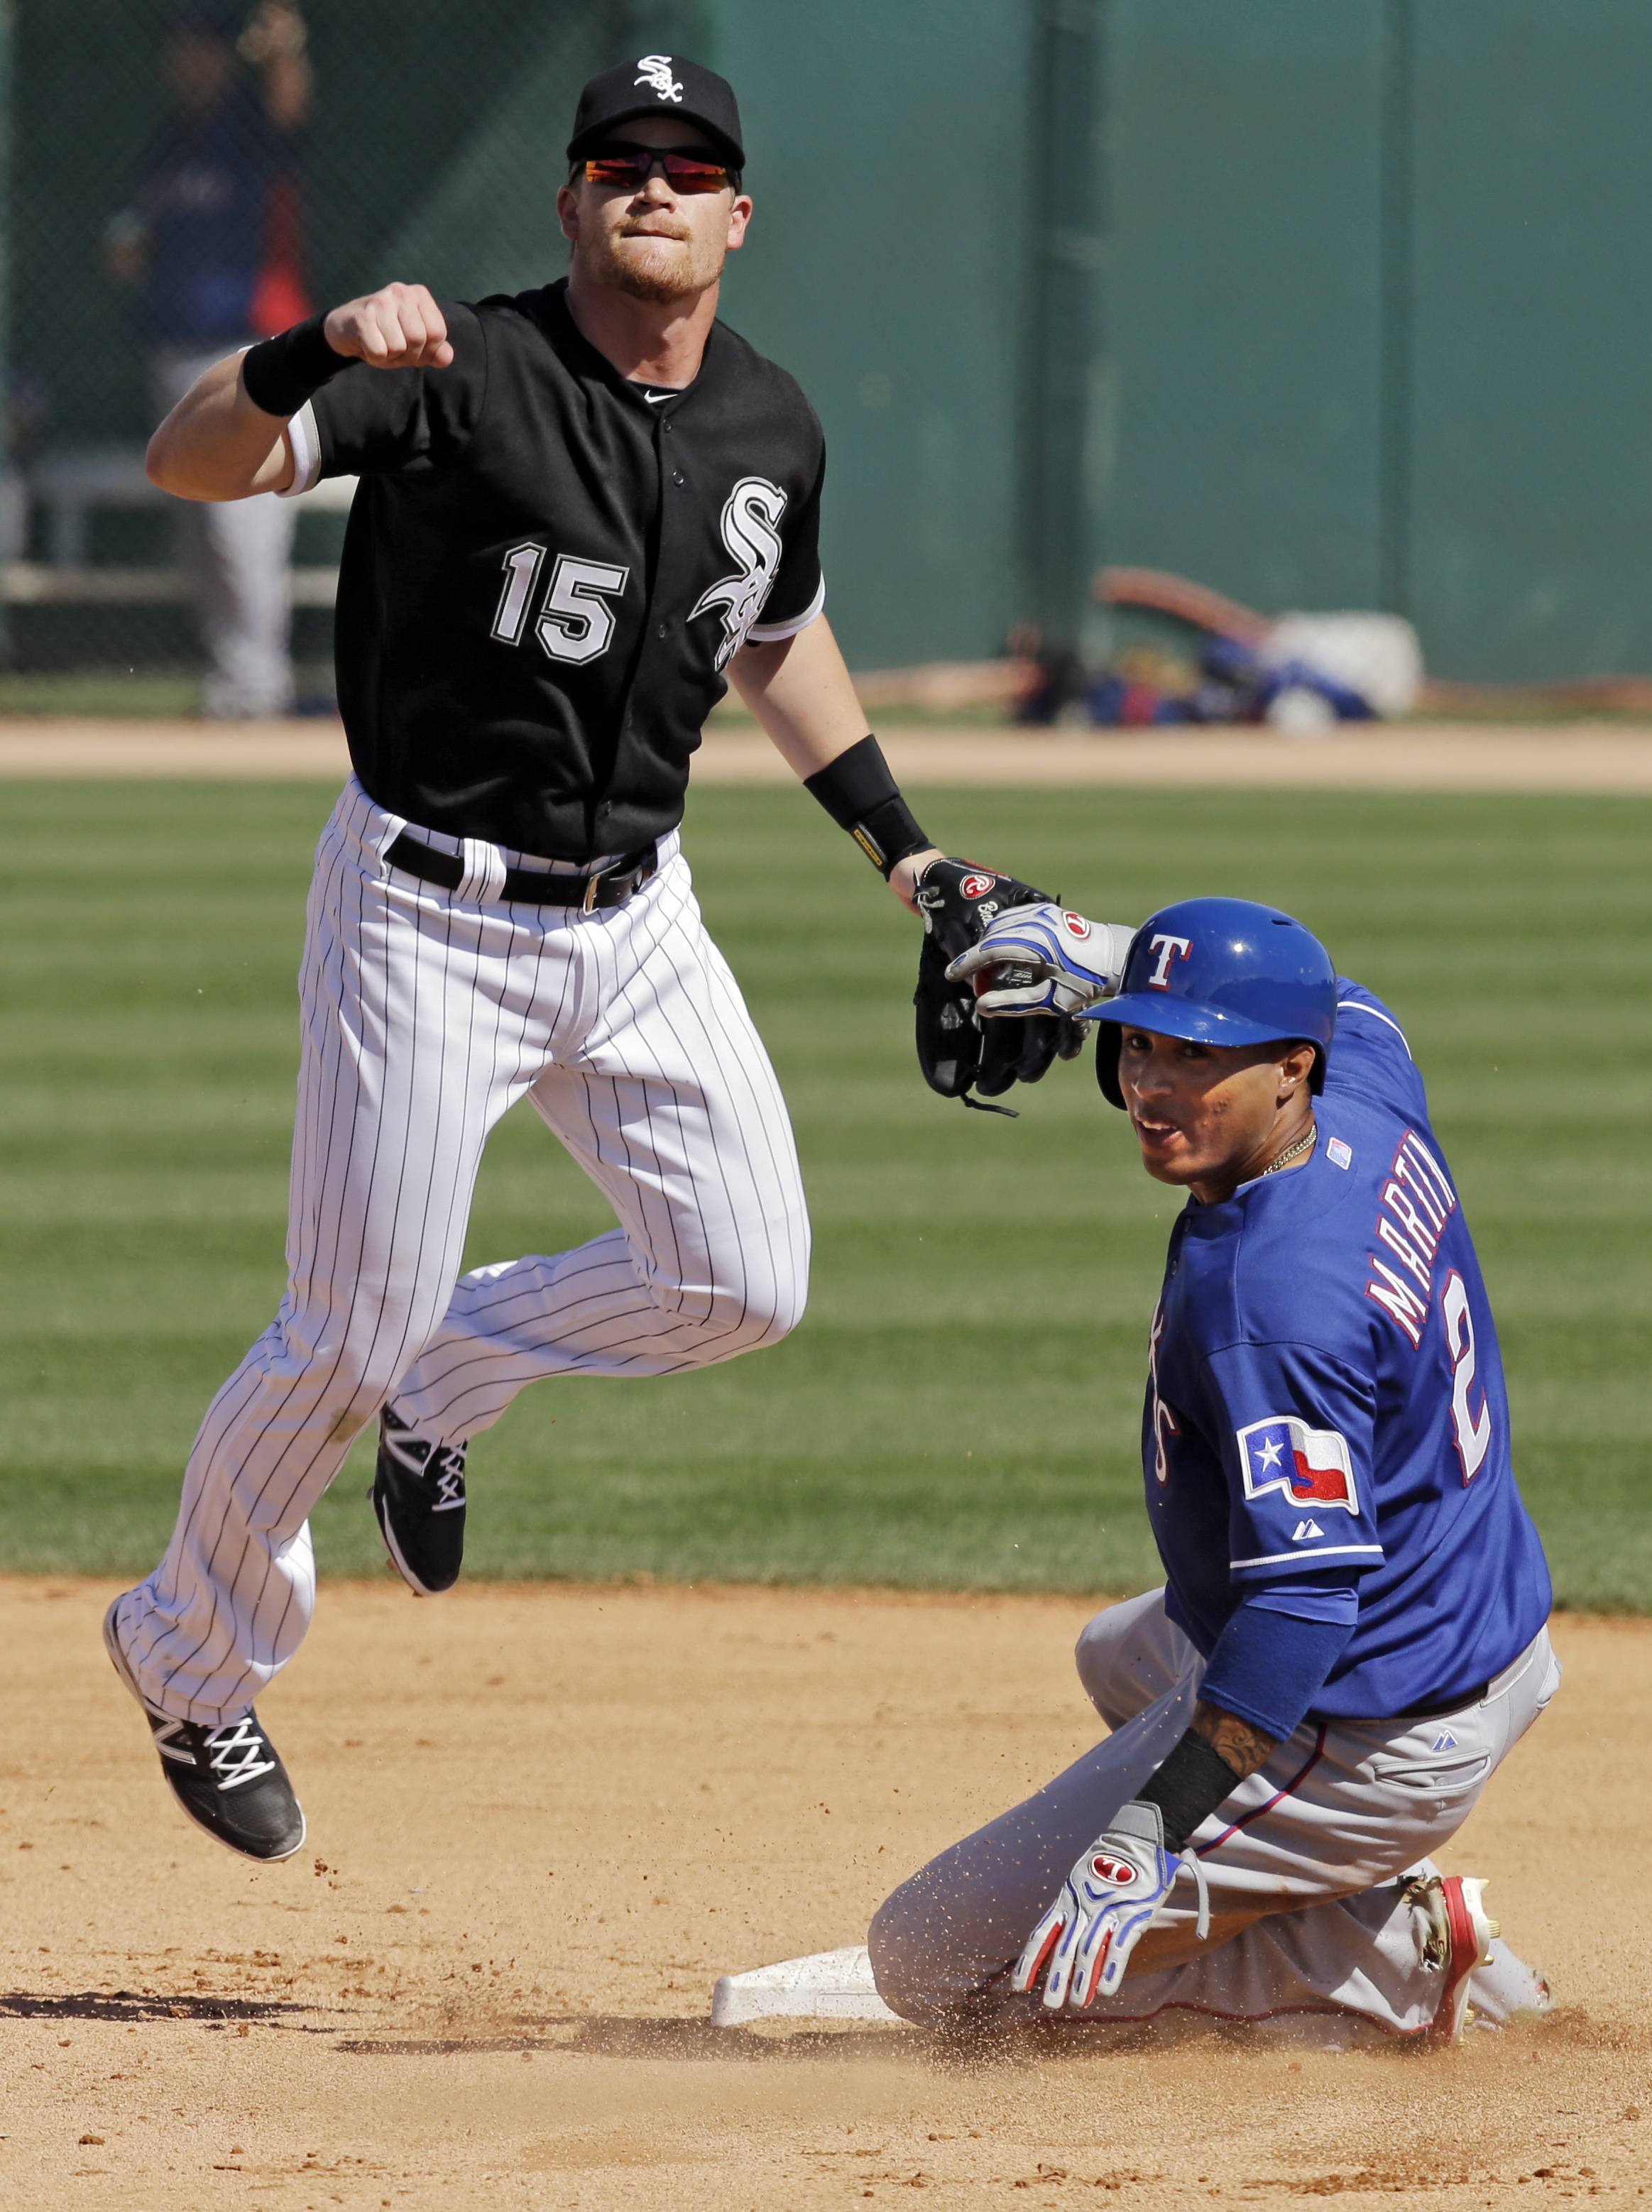 Chicago White Sox second baseman Gordon Beckham (15) watches his throw to first after forcing out Texas Rangers' Leonys Martin to start a double play in the fifth inning of a spring exhibition baseball game Tuesday, March 11, 2014, in Glendale, Ariz. (AP Photo/Mark Duncan)